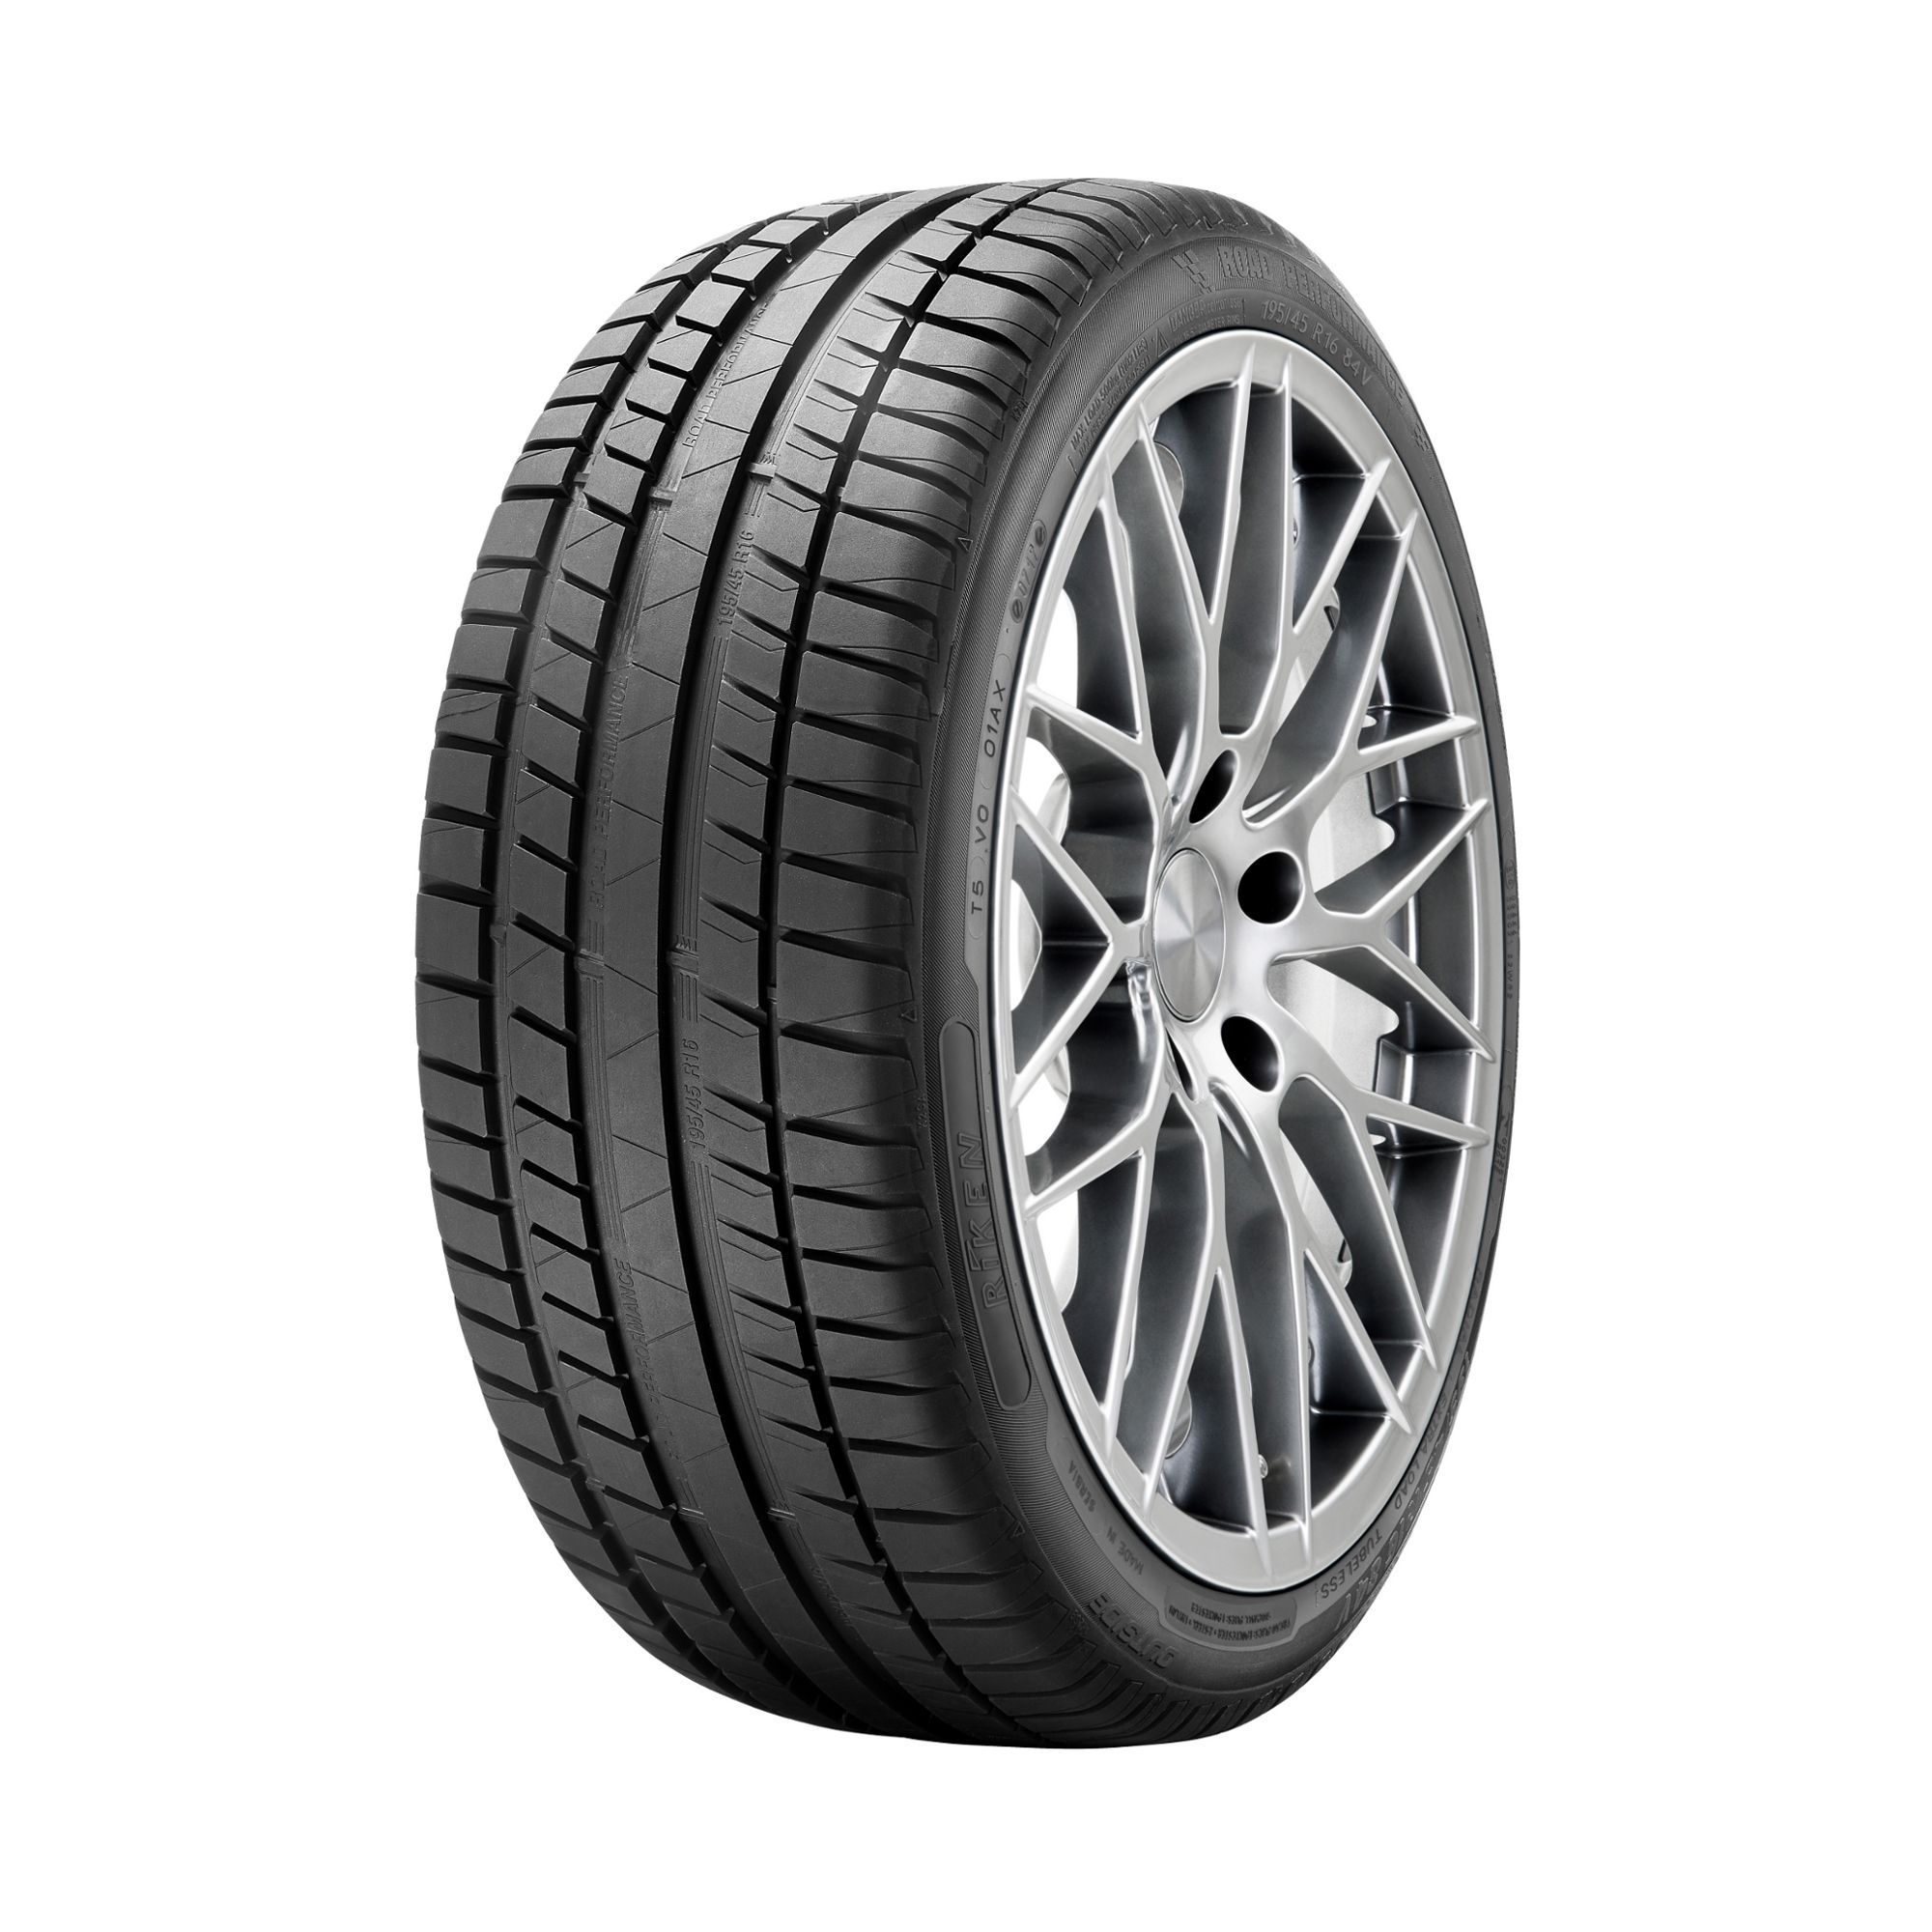 Anvelopa vara RIKEN Road Perform.(by Michelin)XL 205/55 R16 94V